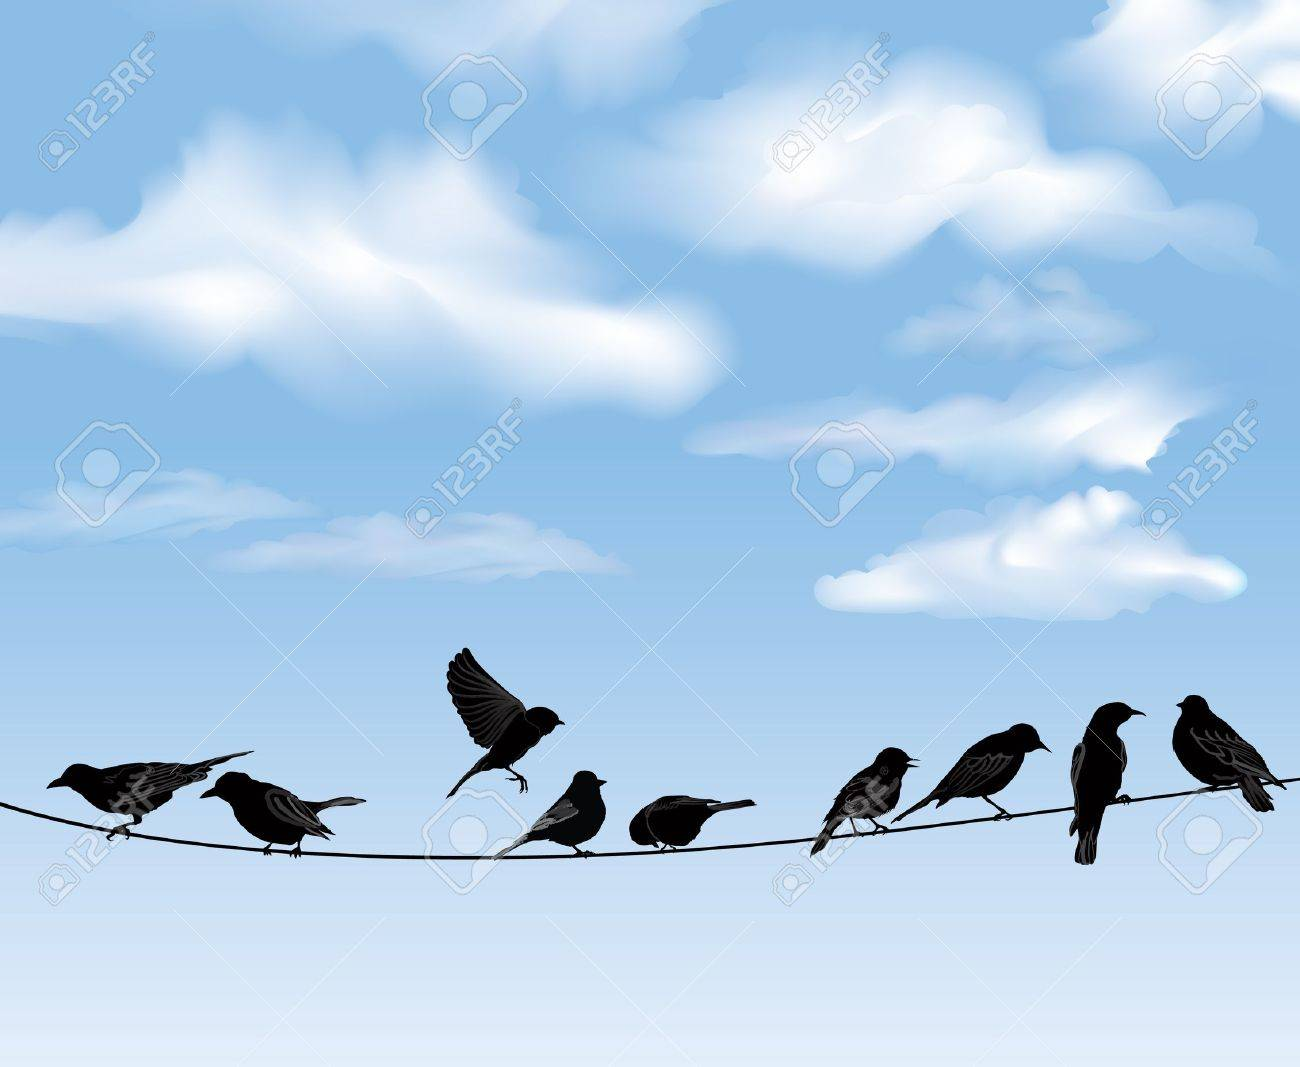 Set of birds on wires over blue sky background  A vector illustration Stock Vector - 20912612